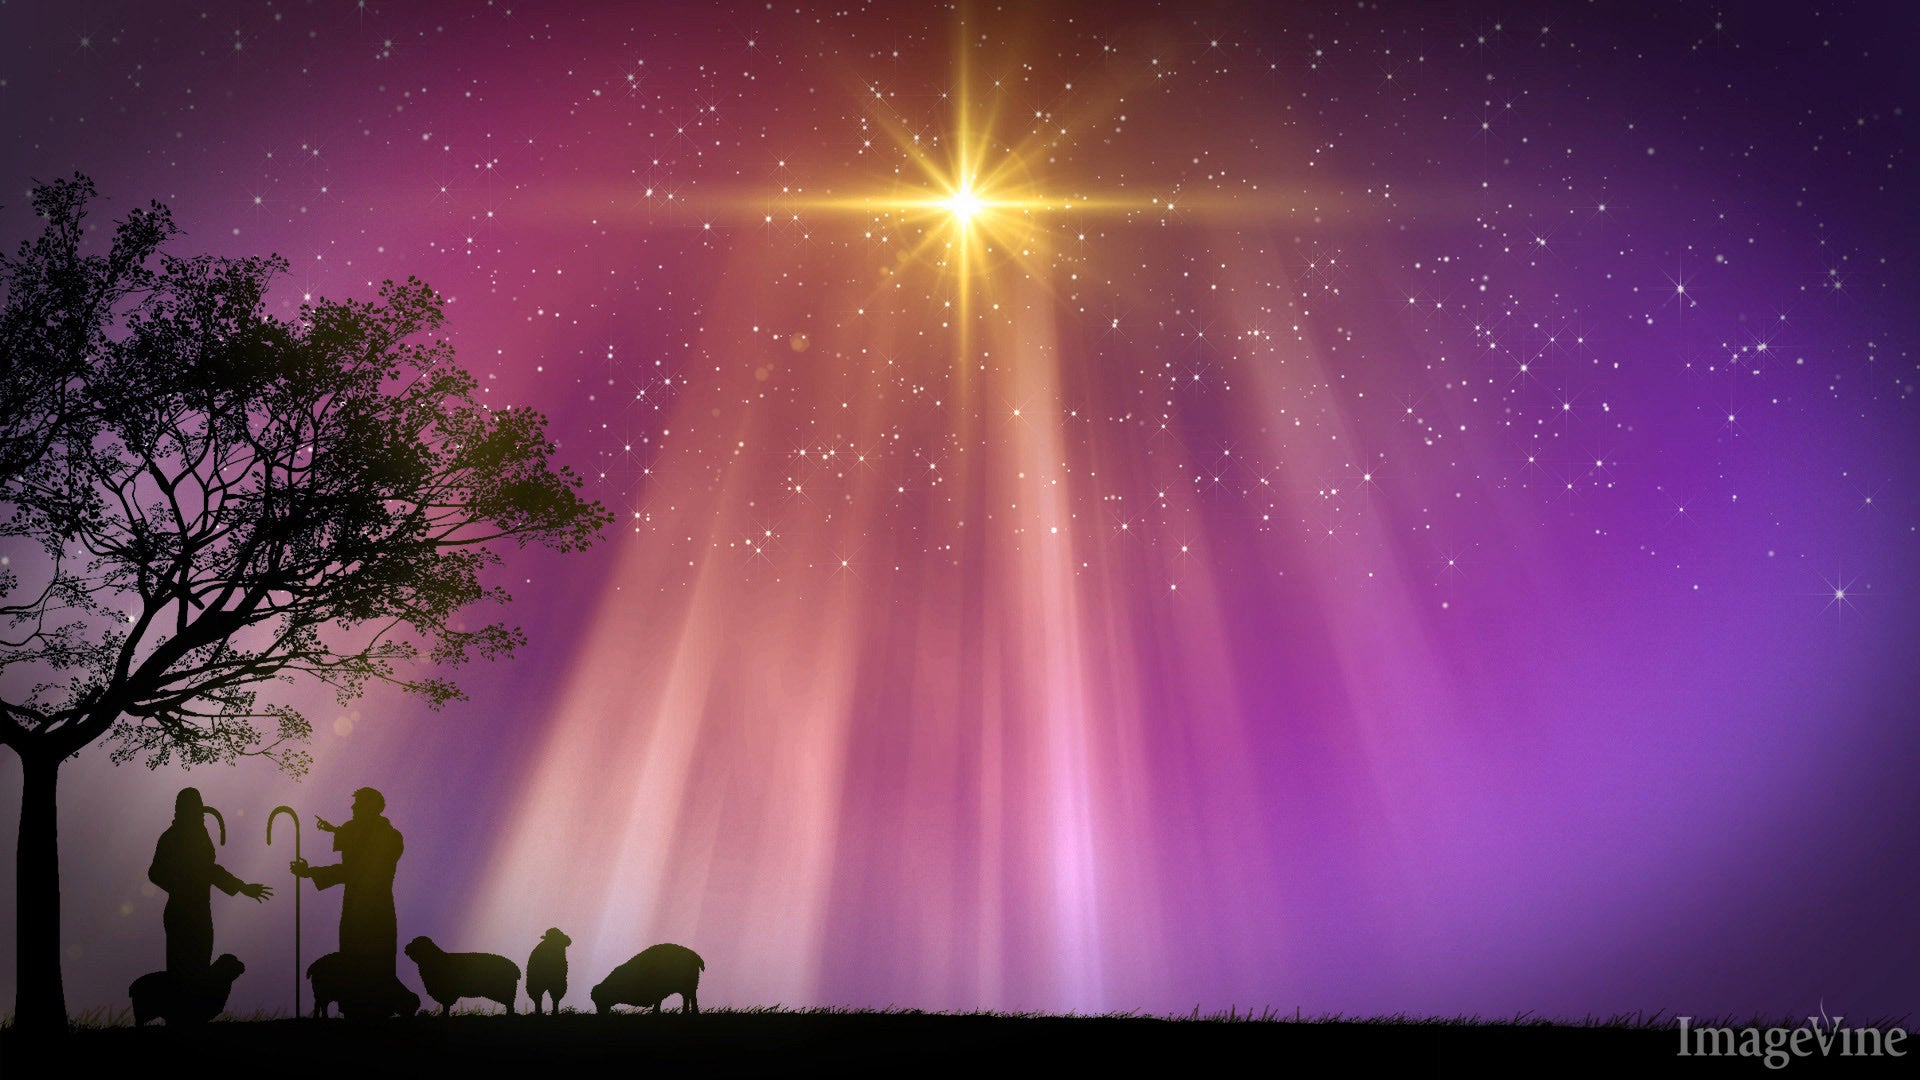 christian christmas backgrounds, images and mini movies – imagevine, Modern powerpoint